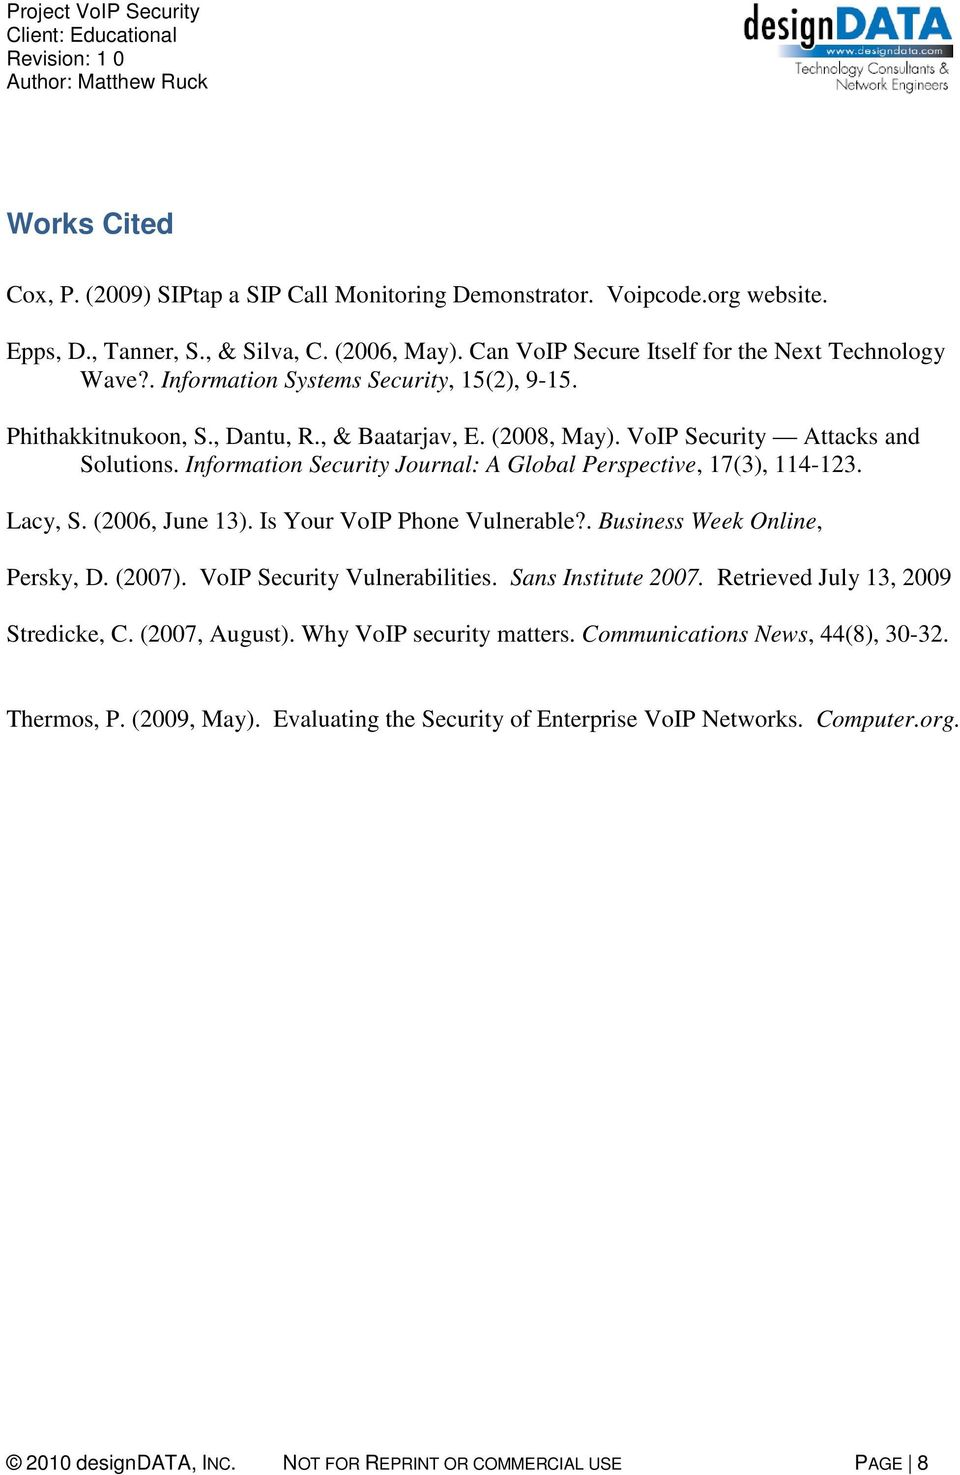 Information Security Journal: A Global Perspective, 17(3), 114-123. Lacy, S. (2006, June 13). Is Your VoIP Phone Vulnerable?. Business Week Online, Persky, D. (2007). VoIP Security Vulnerabilities.